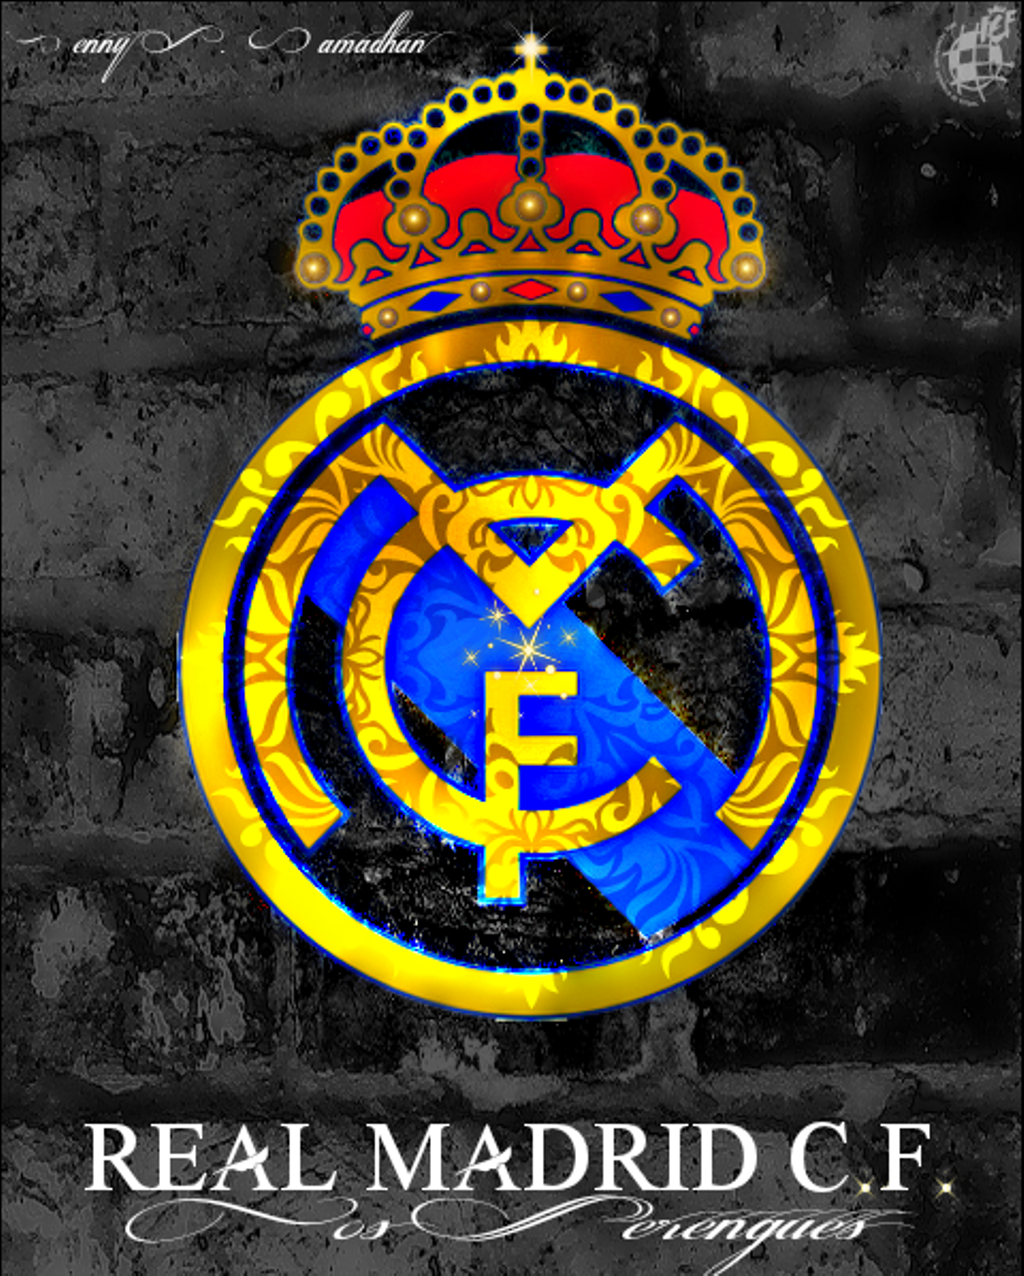 Real Madrid Logo - real madrid logo - Image by ㅤㅤDenny S. Ramadhan